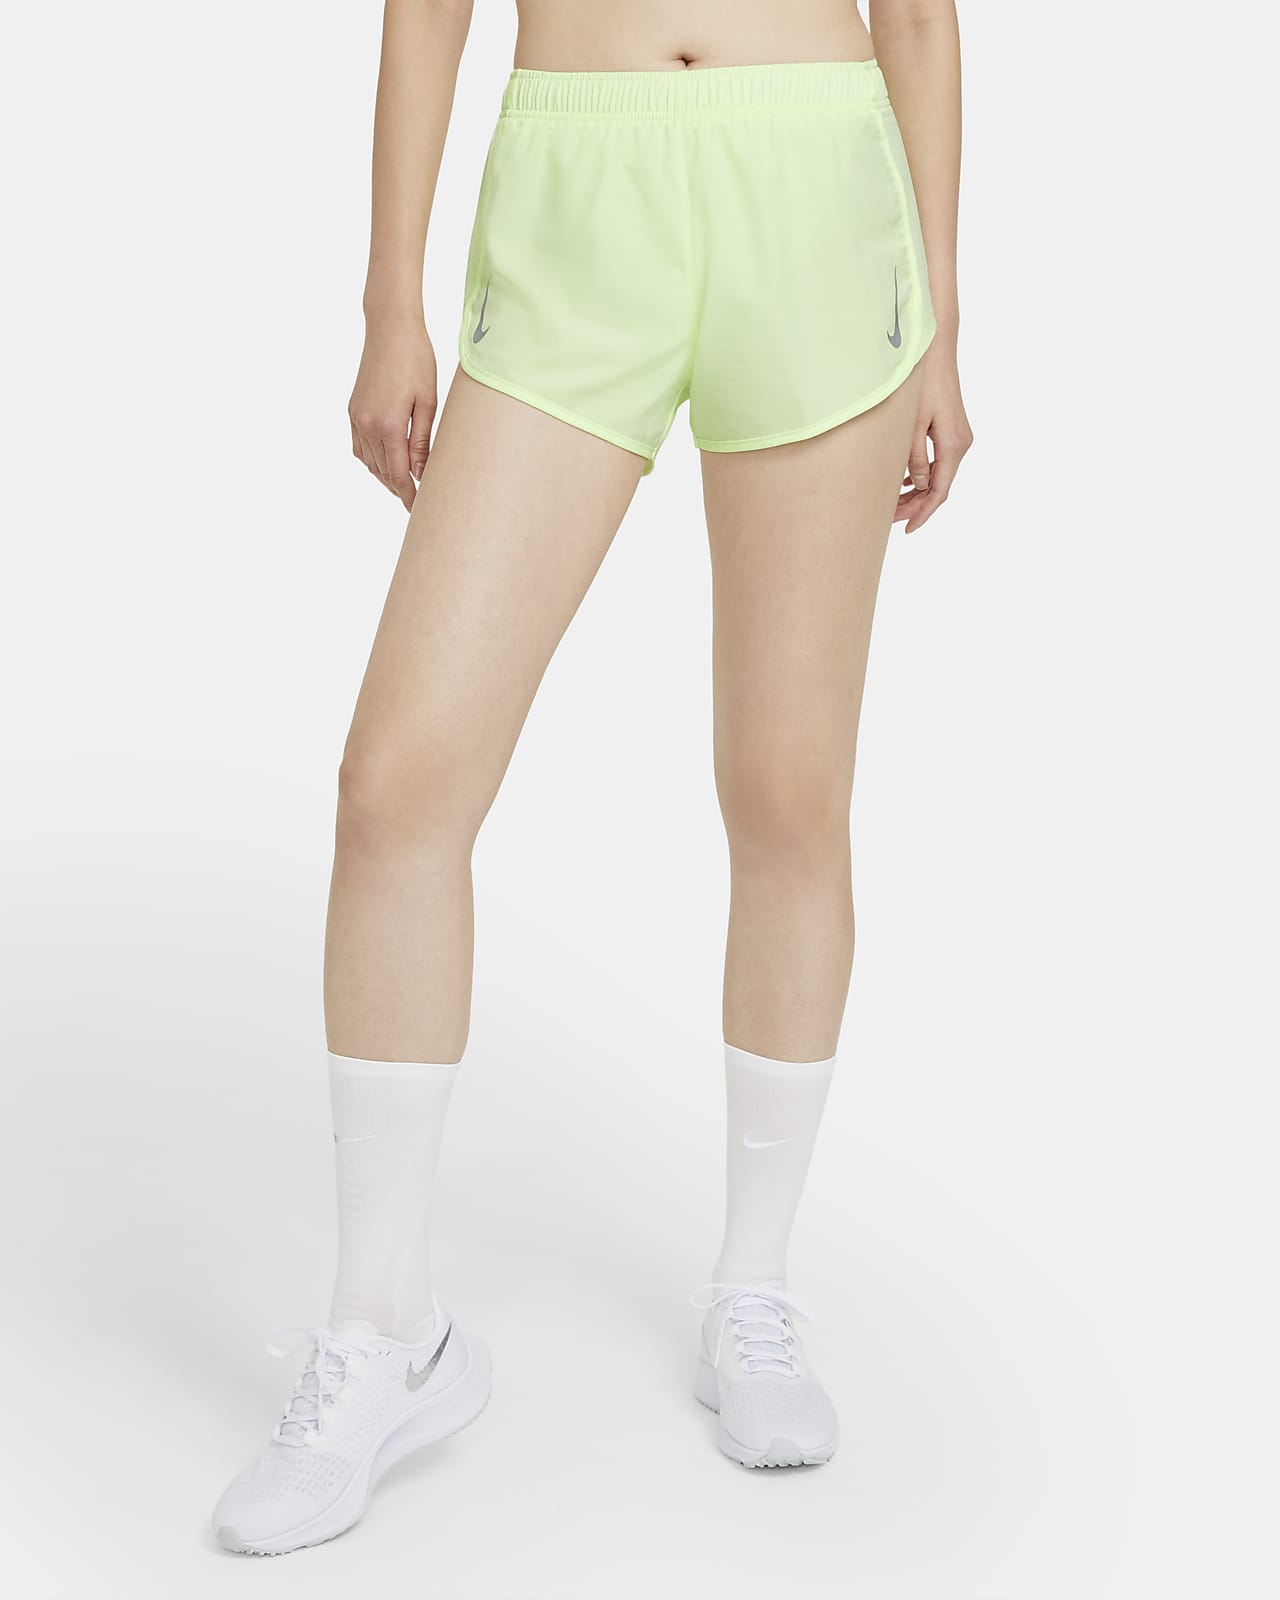 Nike Tempo Women's High-Cut Running Shorts